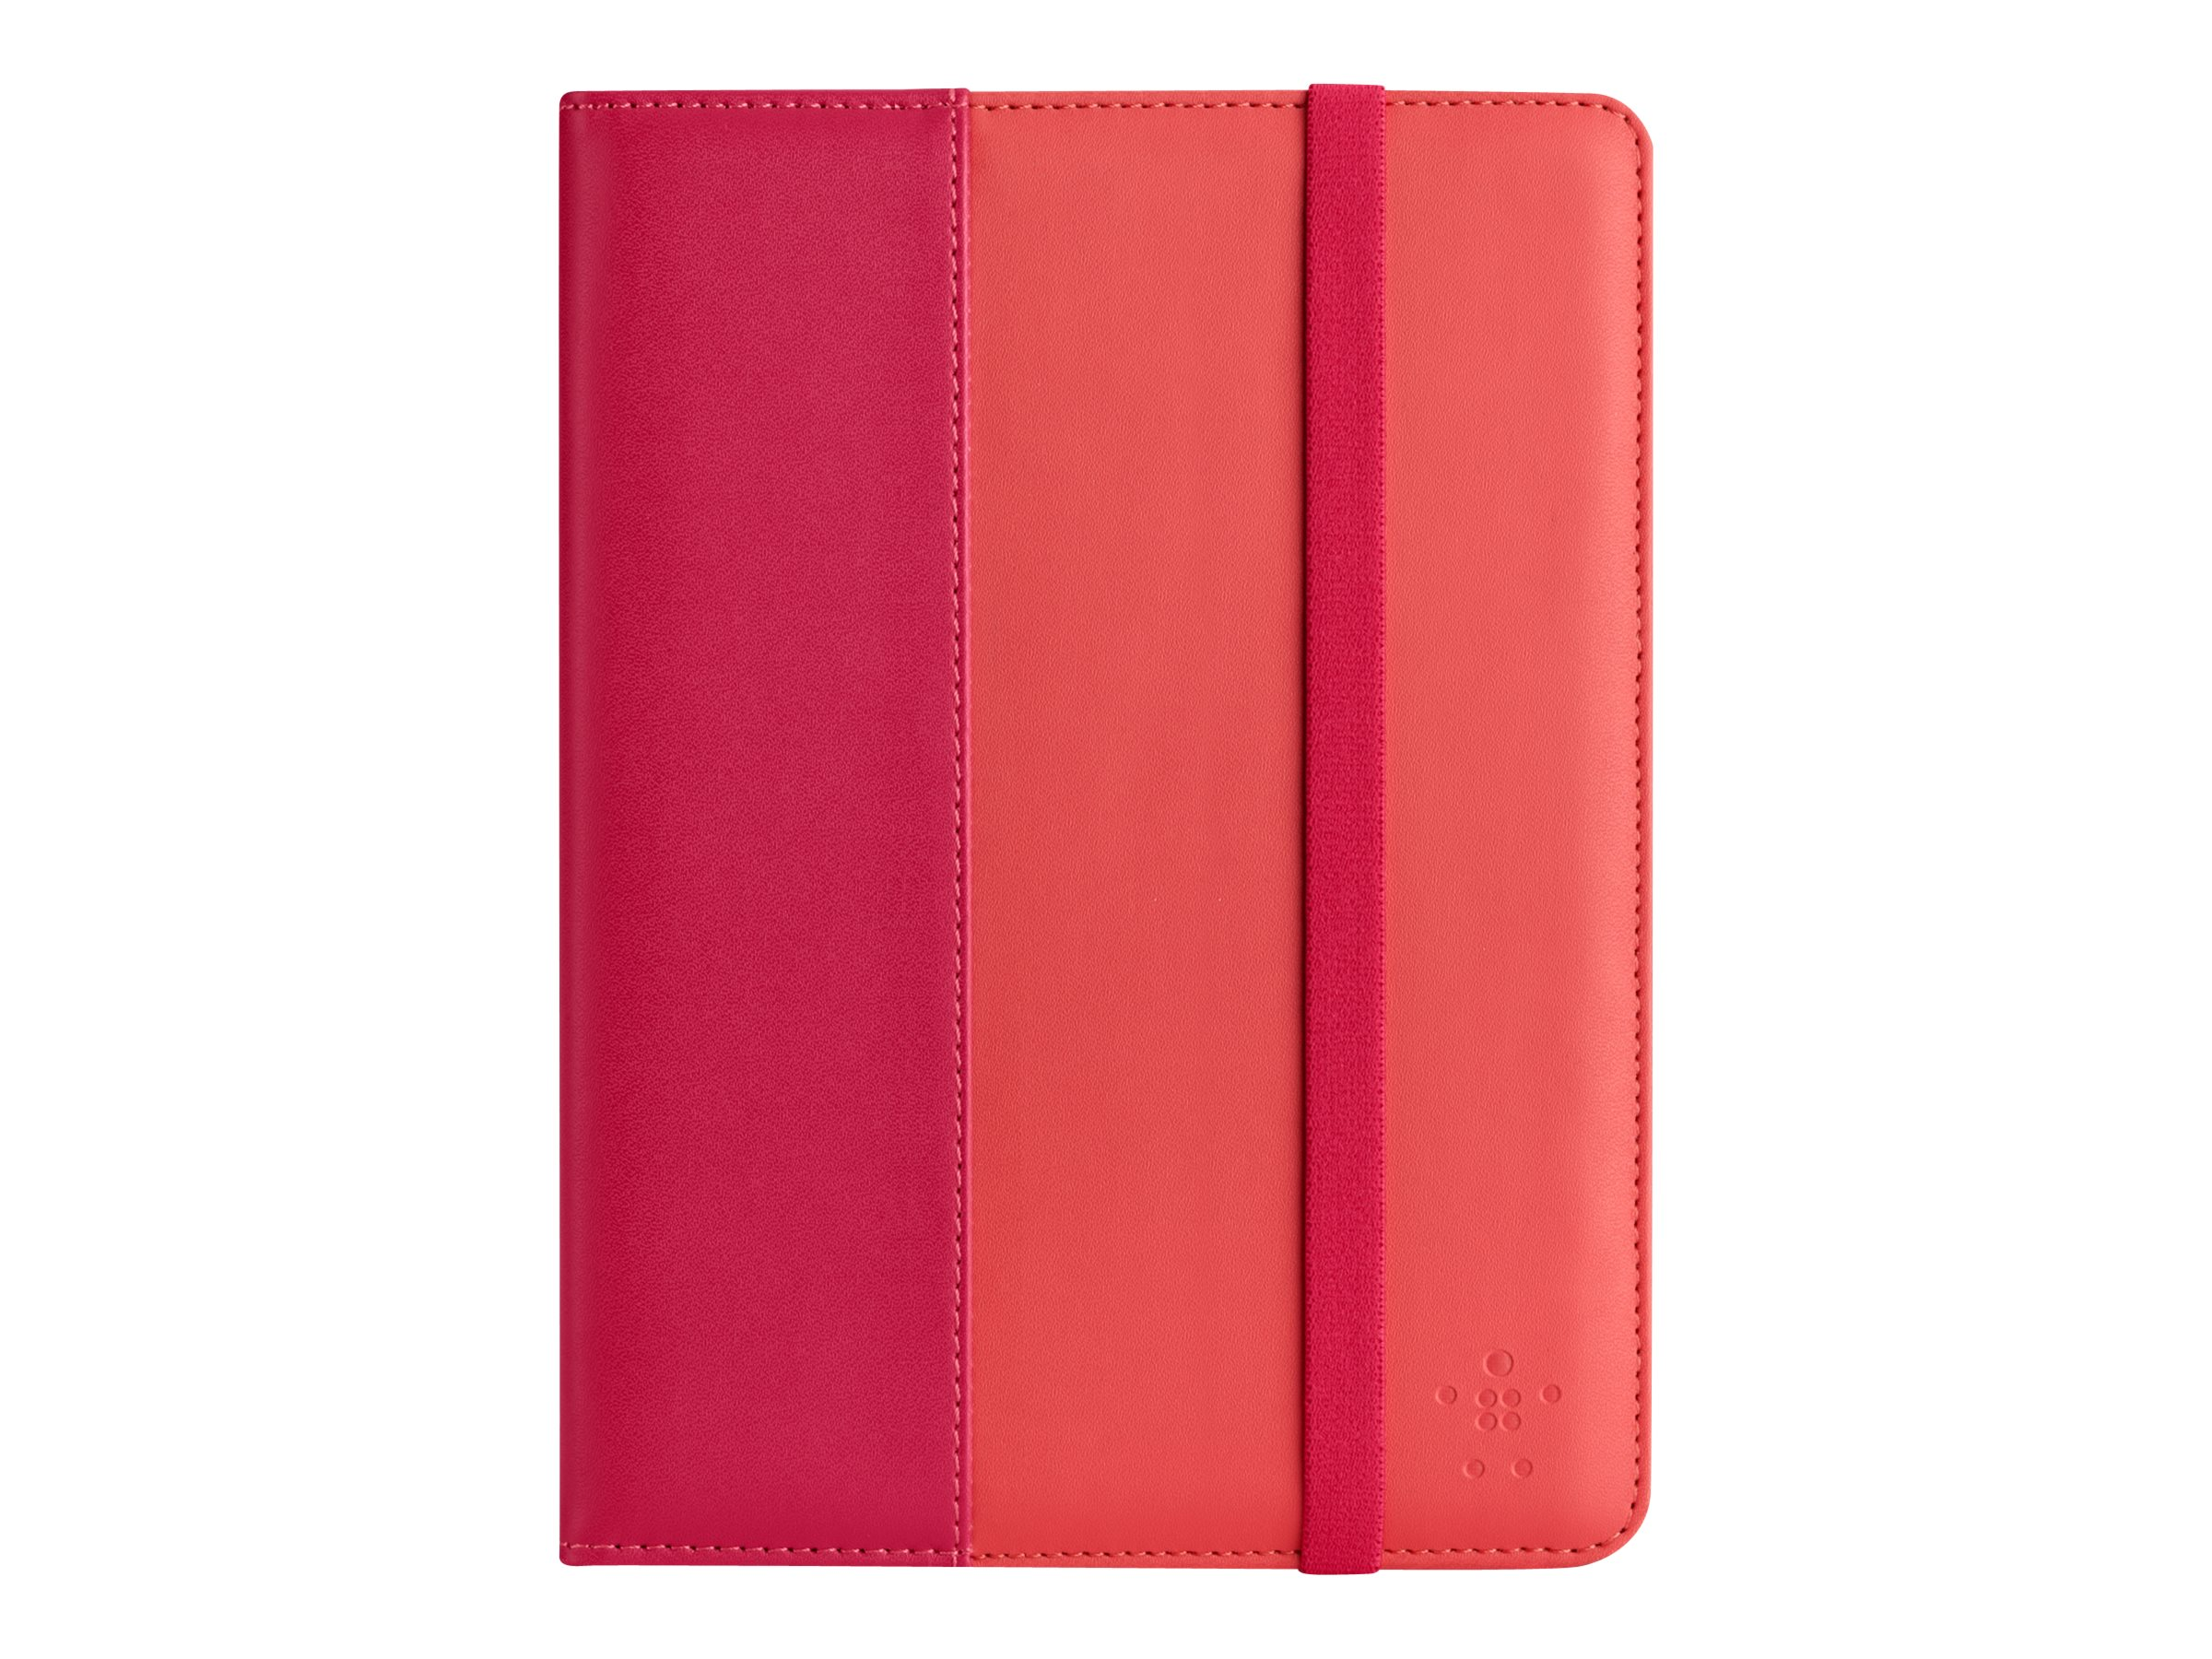 Belkin Classic Tab Cover for Kindle Fire HD 7, Pink, F8N886TTC02, 14971916, Carrying Cases - Tablets & eReaders